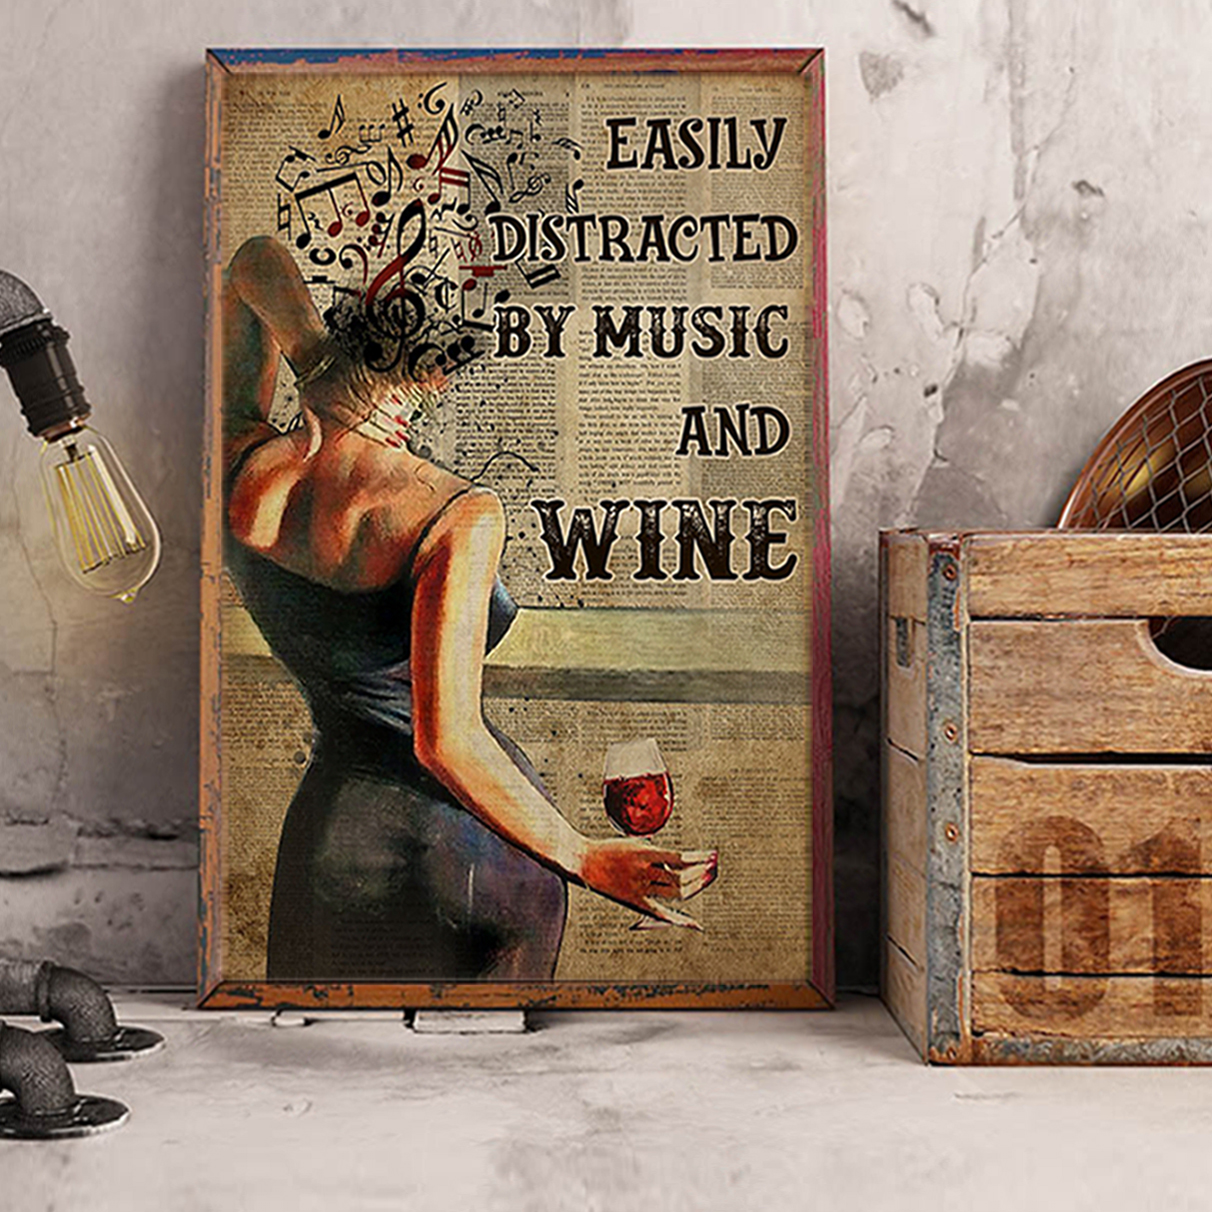 Easily distracted by music and wine book poster A1